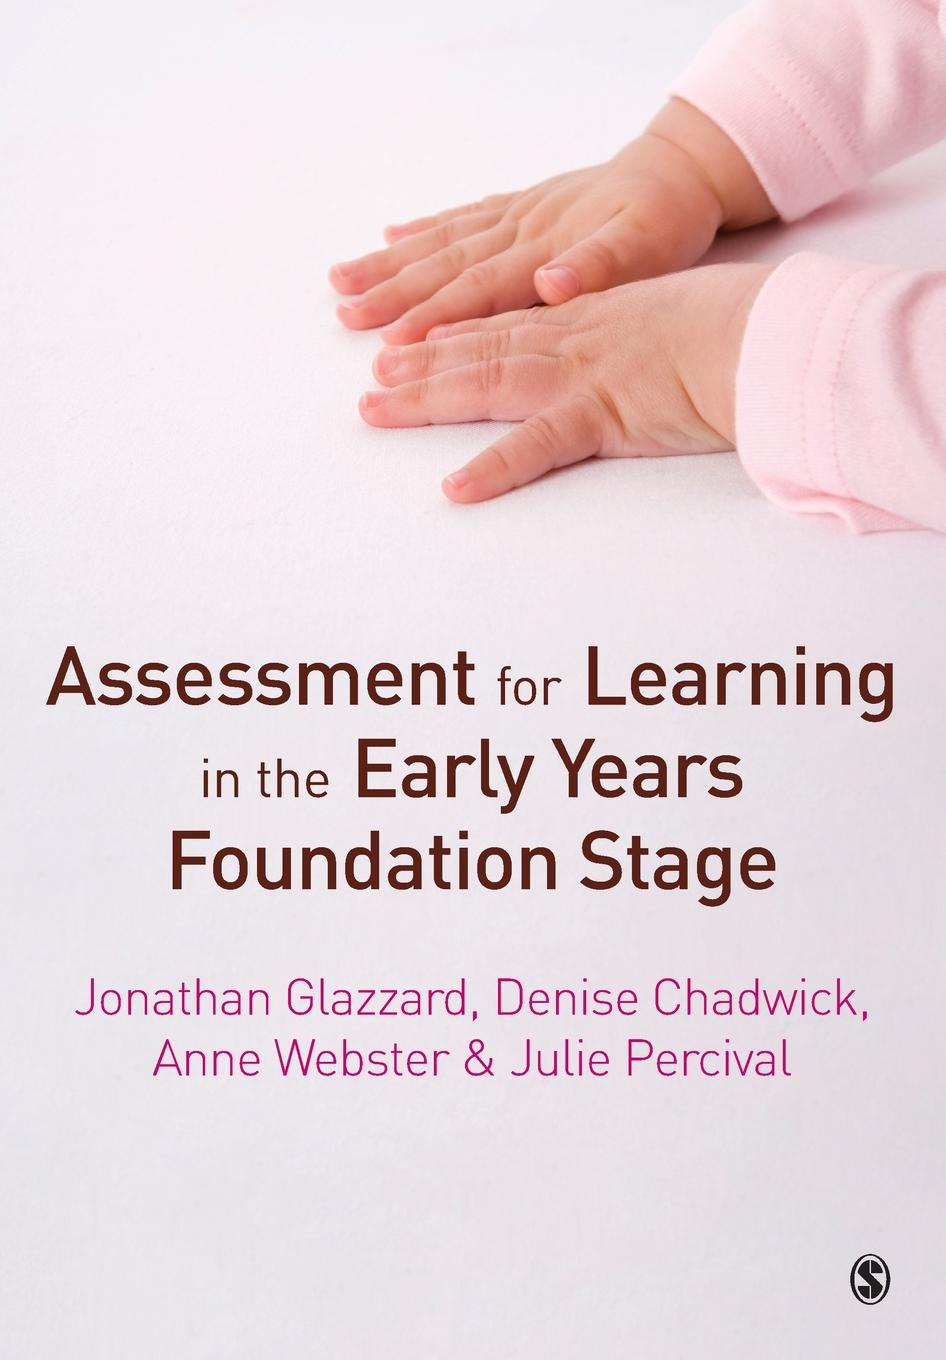 лучшая цена Jonathan Glazzard, Denise Chadwick, Anne Webster Assessment for Learning in the Early Years Foundation Stage